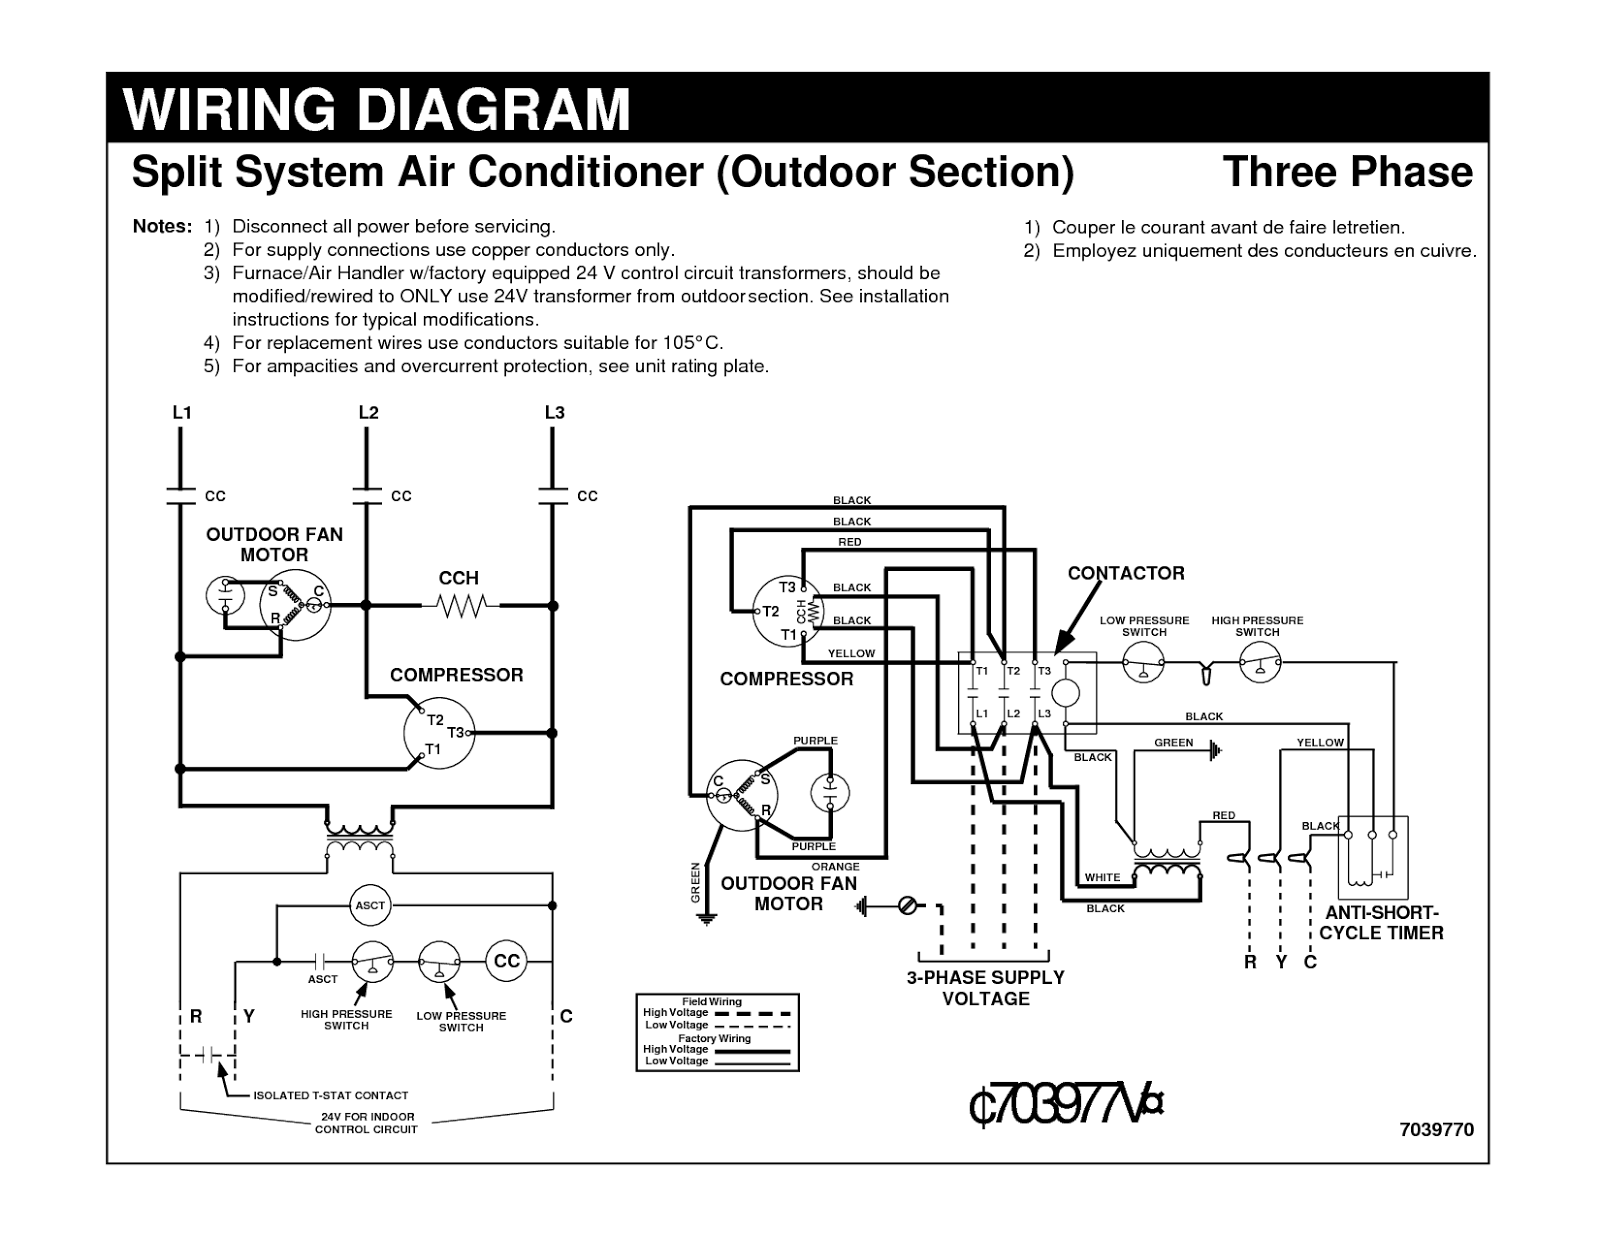 wiring+diagram+in+the+user+manual electrical wiring diagrams for air conditioning systems part one wiring diagram for central air conditioning at readyjetset.co